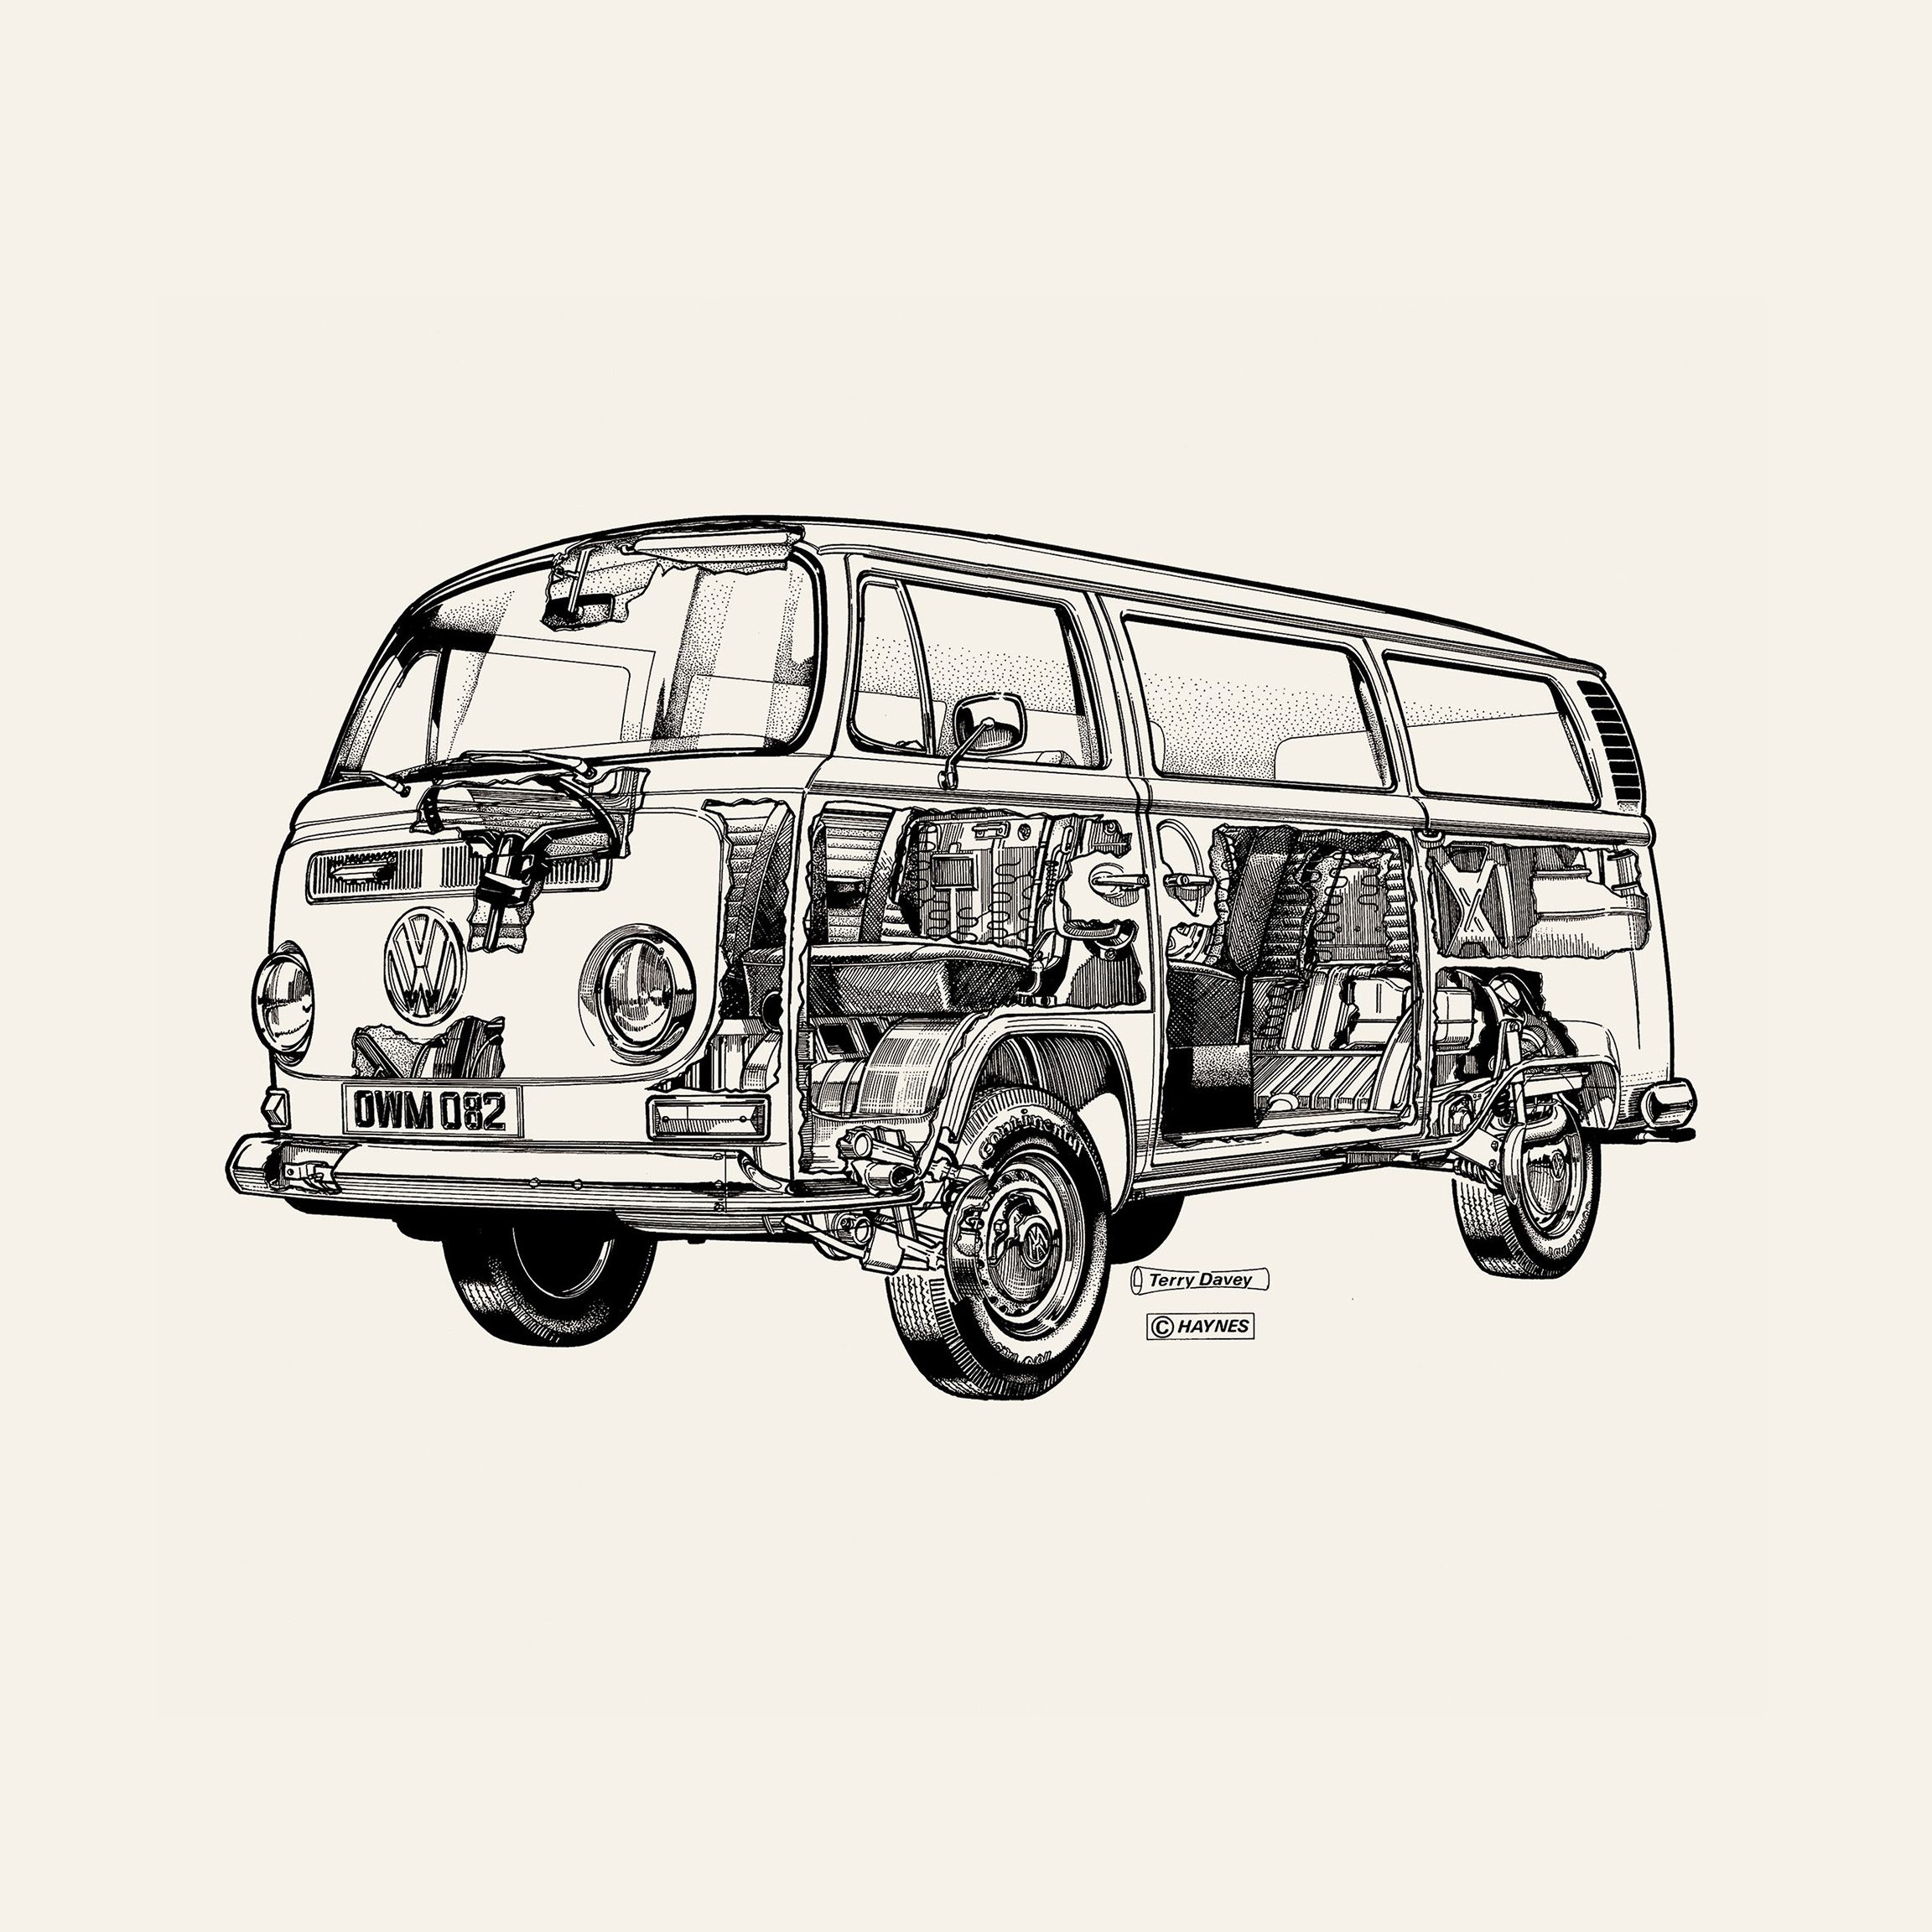 Exclusive Graphic Of A White Camper Van Derived From An